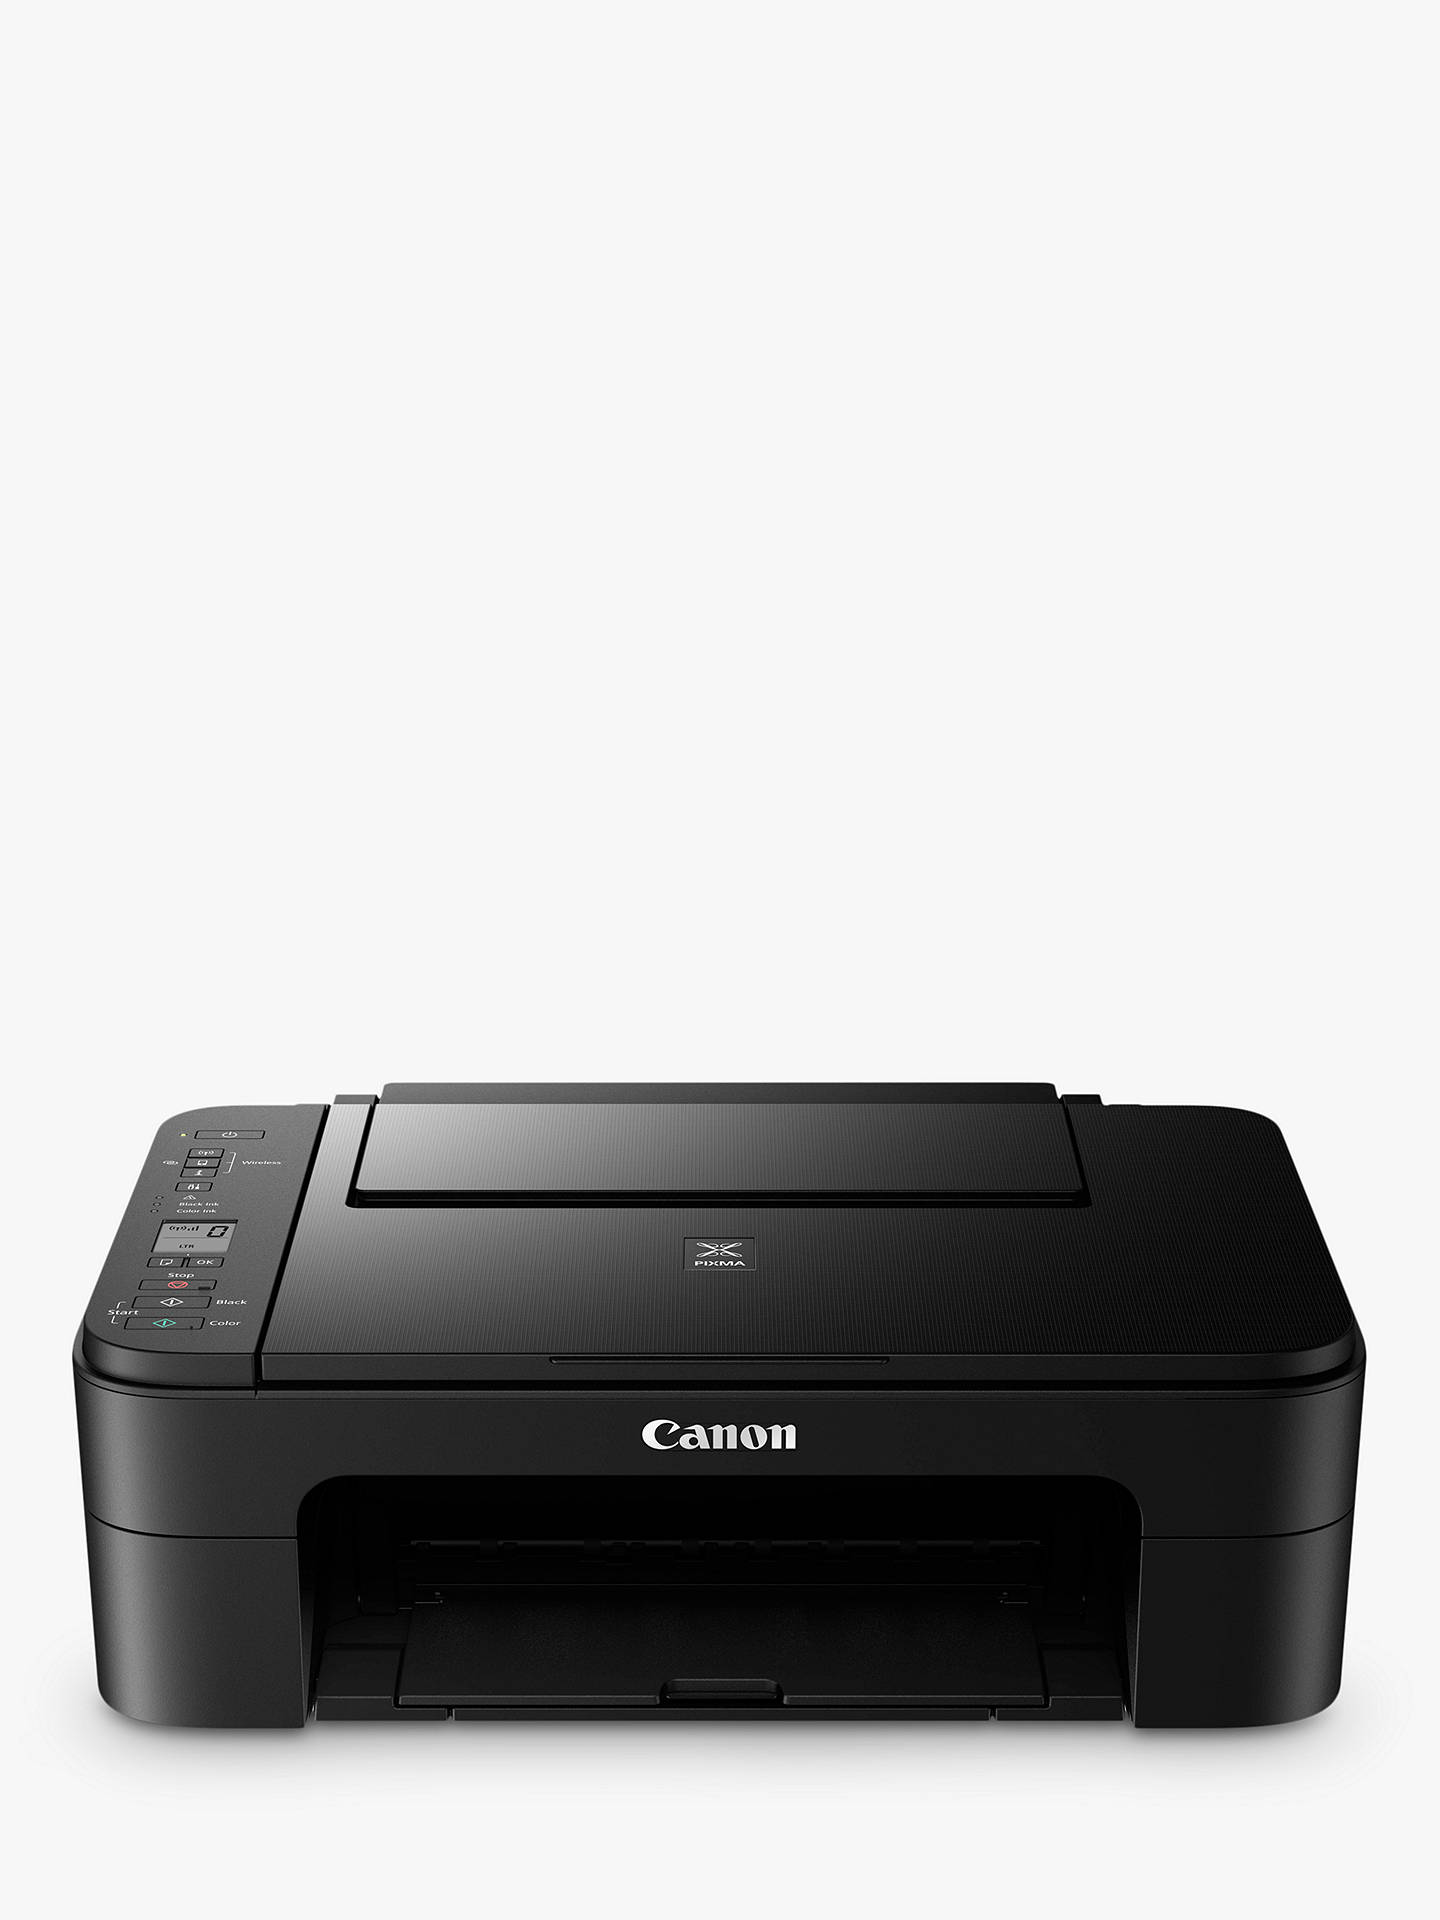 Buy Canon PIXMA TS3350 All-in-One Wireless Wi-Fi Printer, Black Online at johnlewis.com